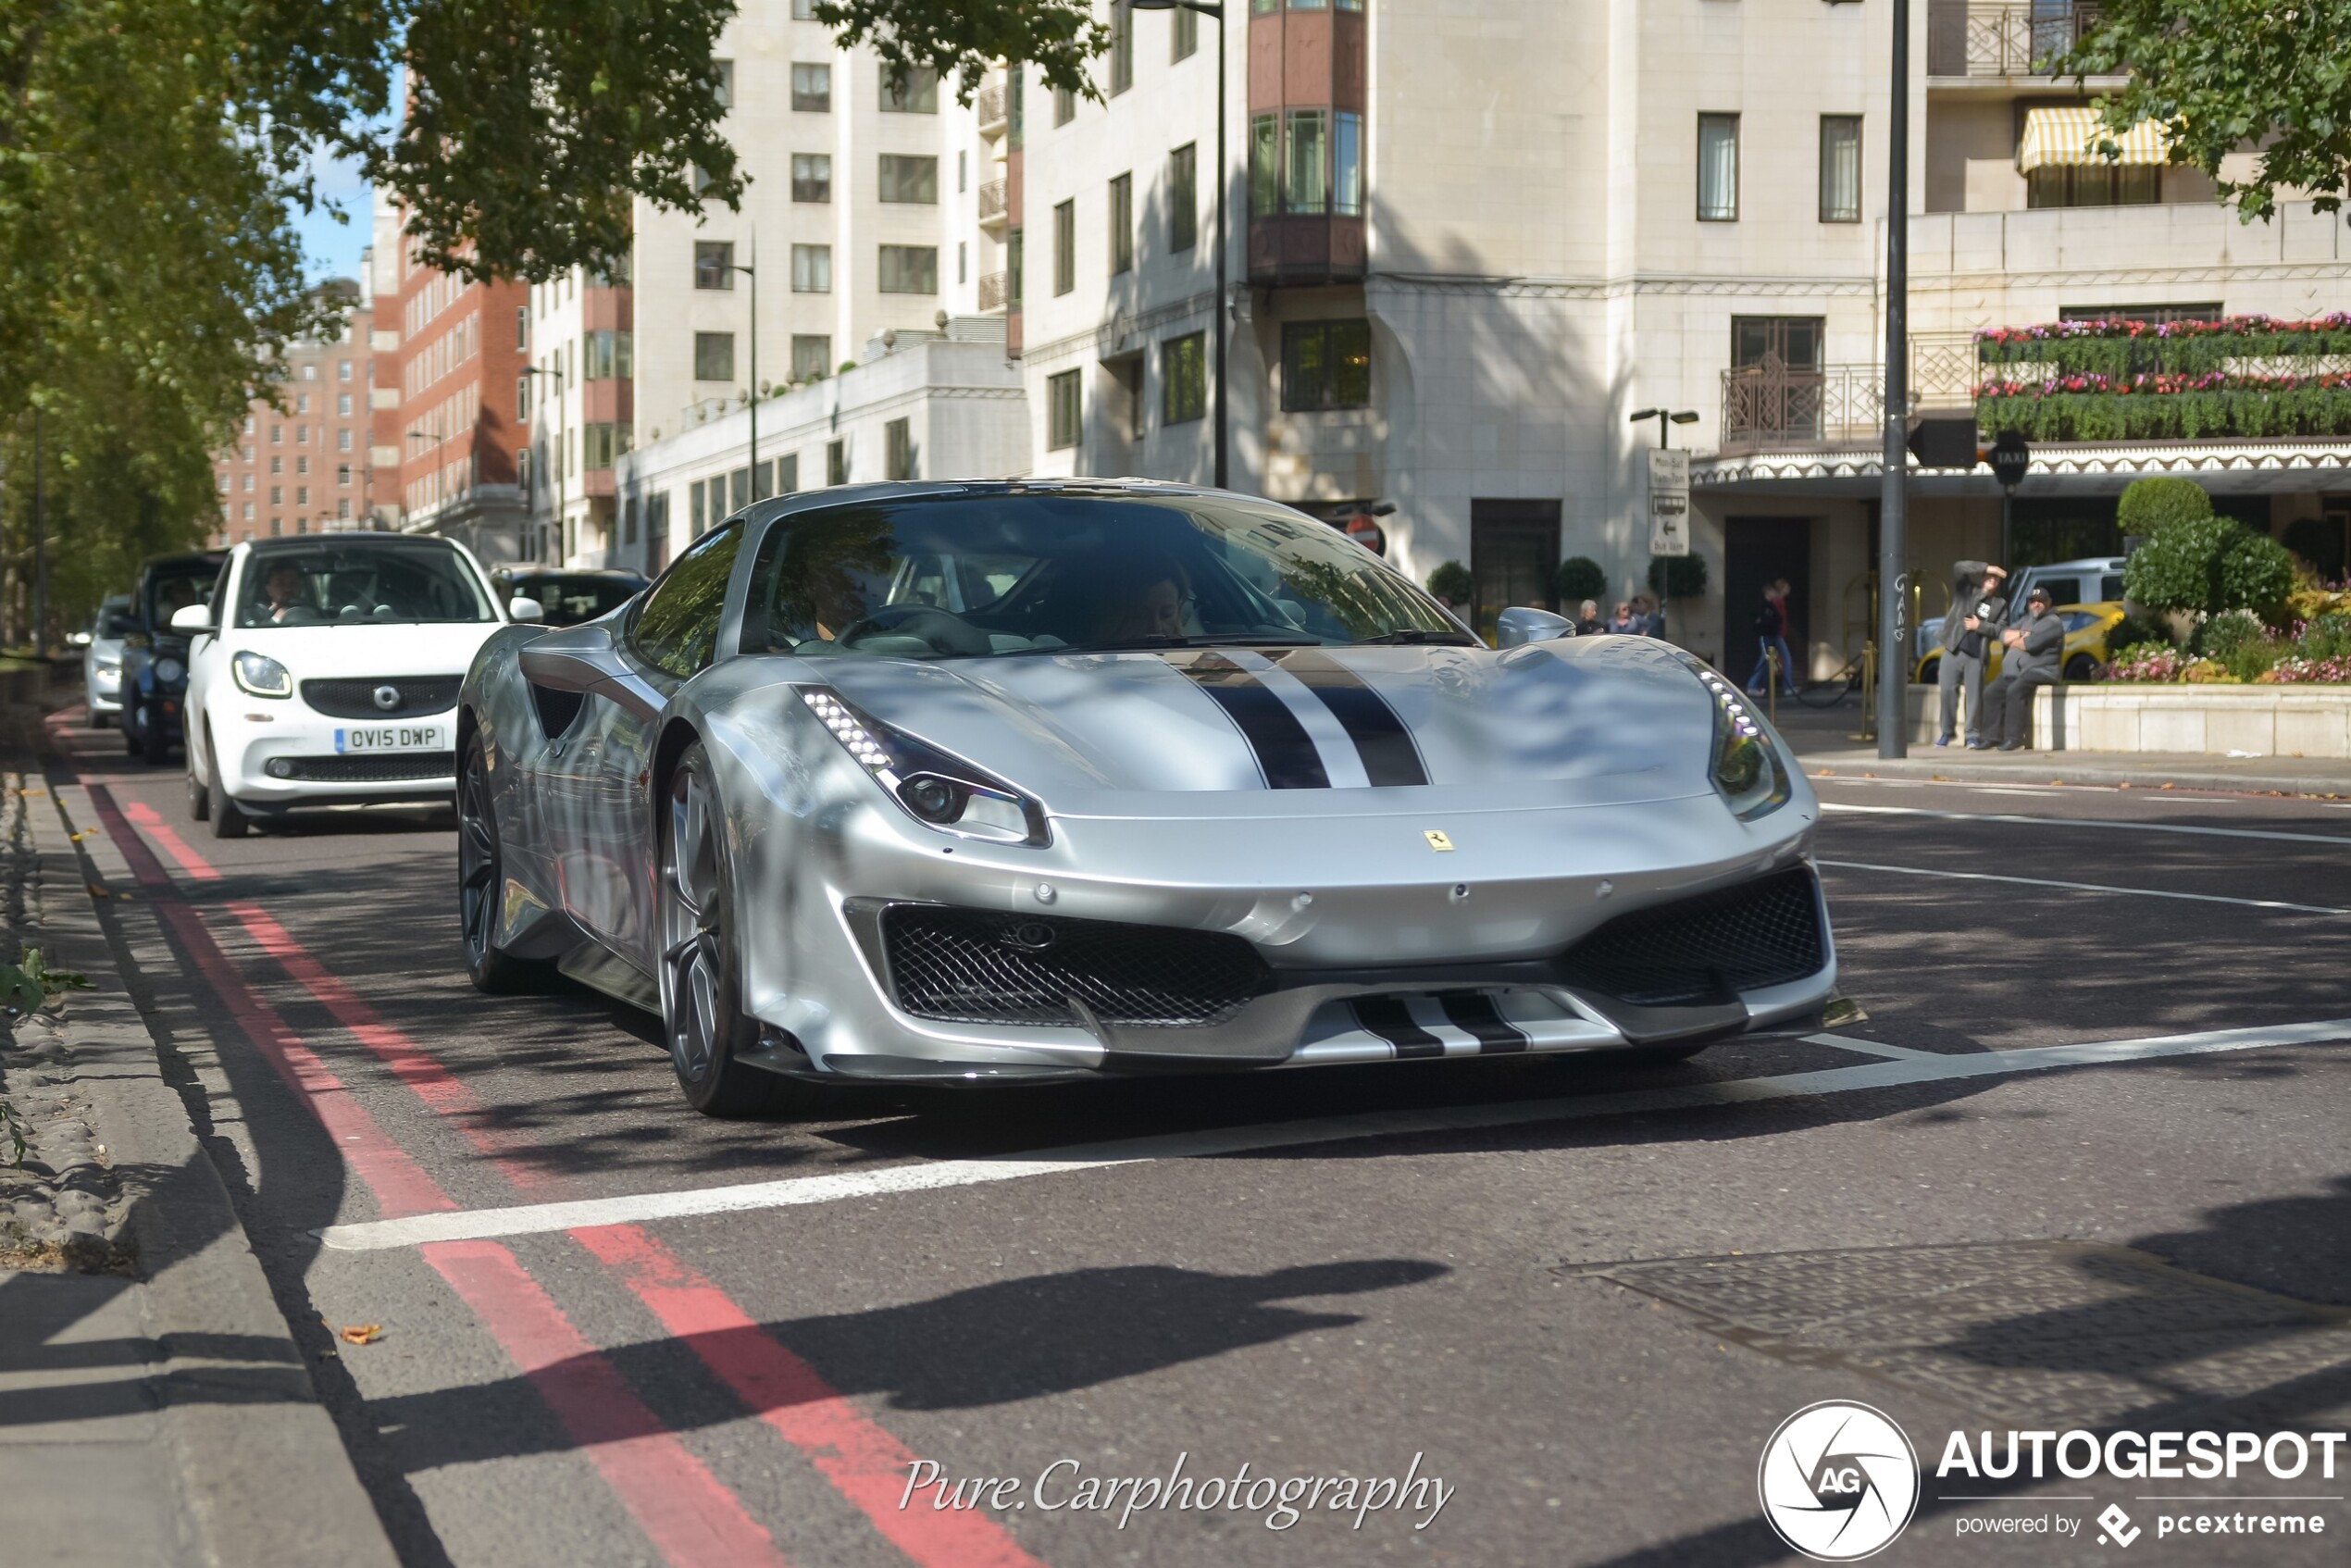 Best Places To Spot Exotic Cars